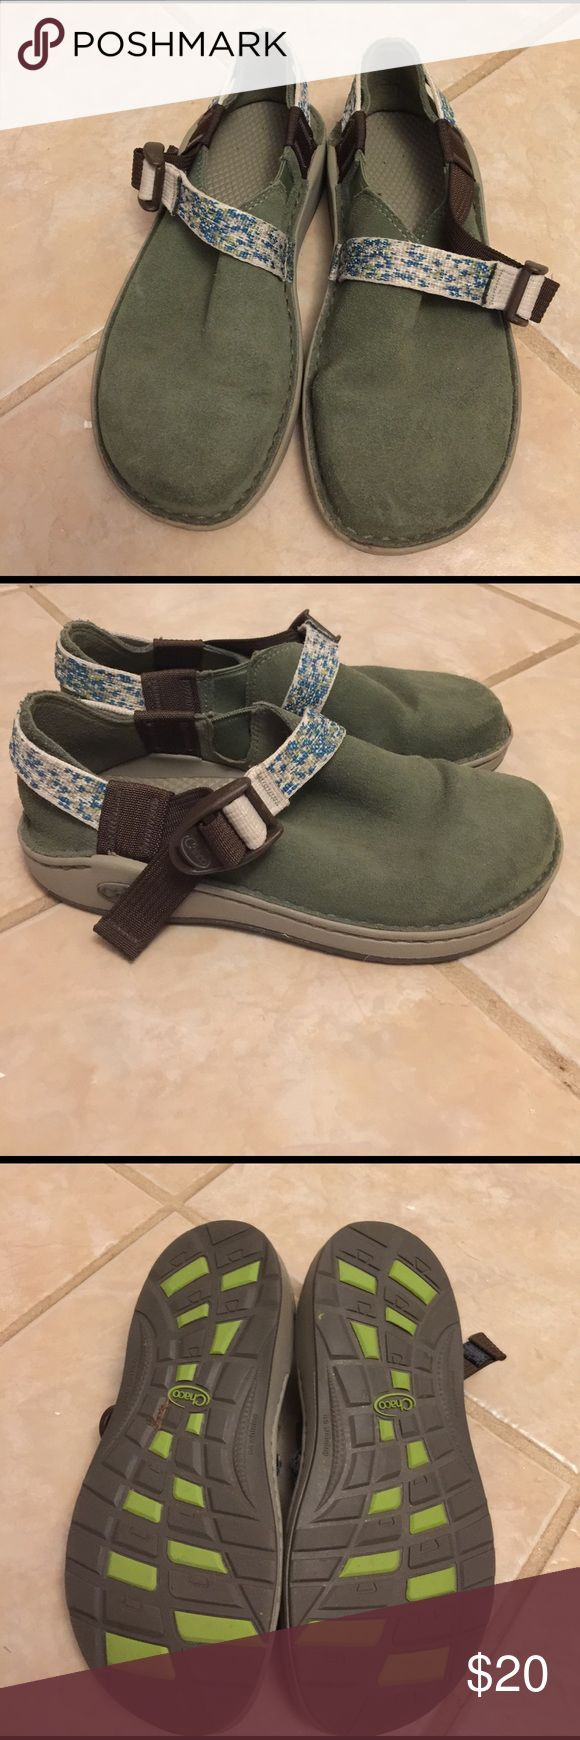 Kids Chaco green suede shoes Barely worn green suede Chaco shoes size 2 youth Chaco Shoes Moccasins